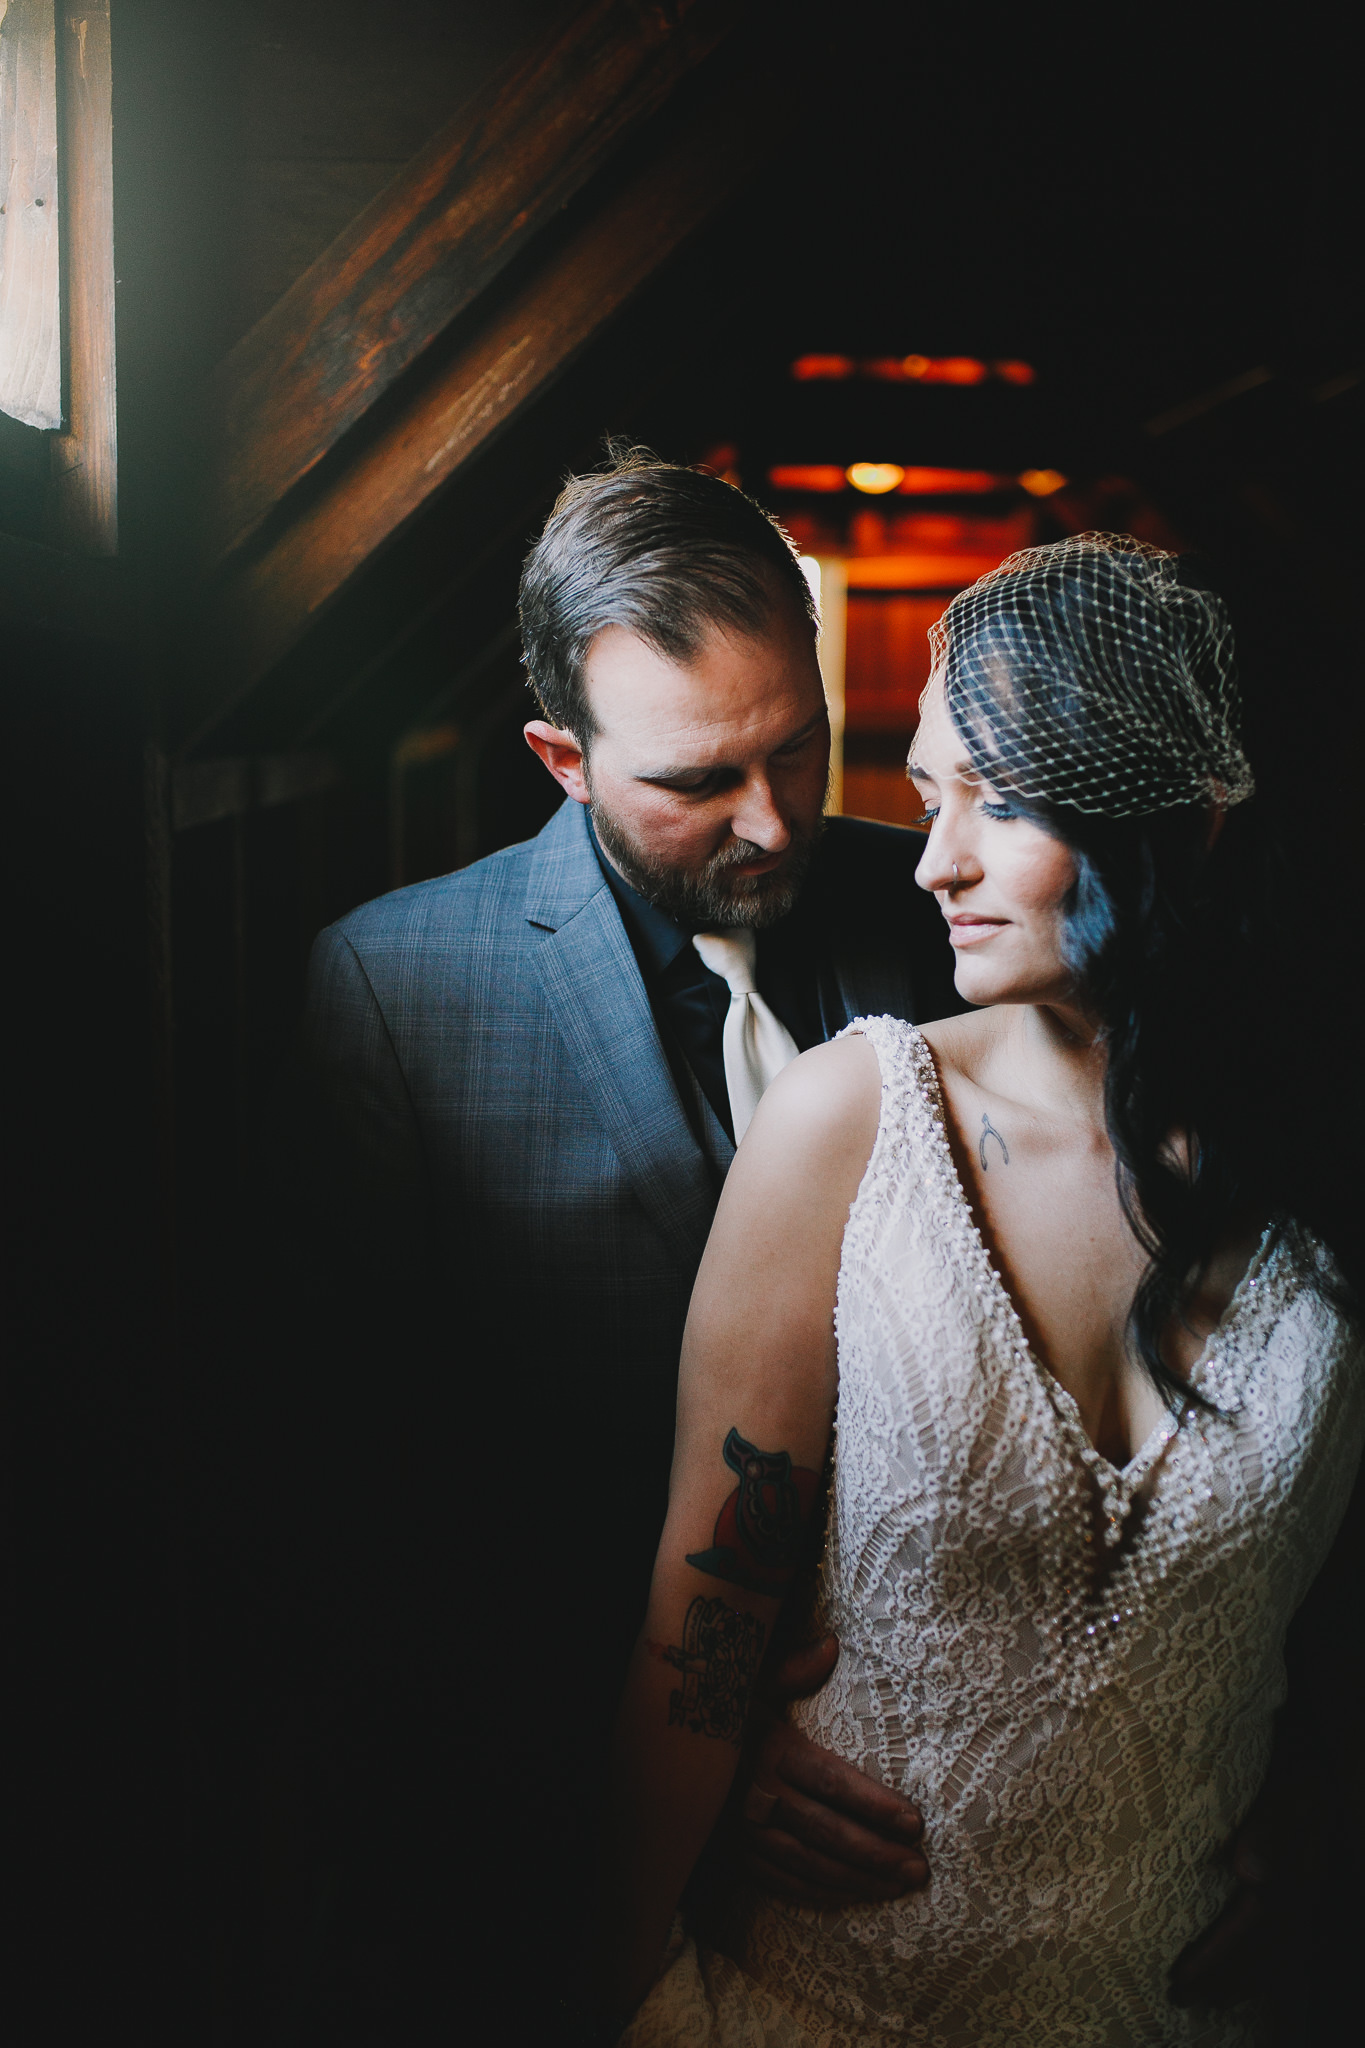 Archer Inspired Photography Sara and Aaron Winchester Mystery House NorCal San Jose California Wedding Photographer-316.jpg